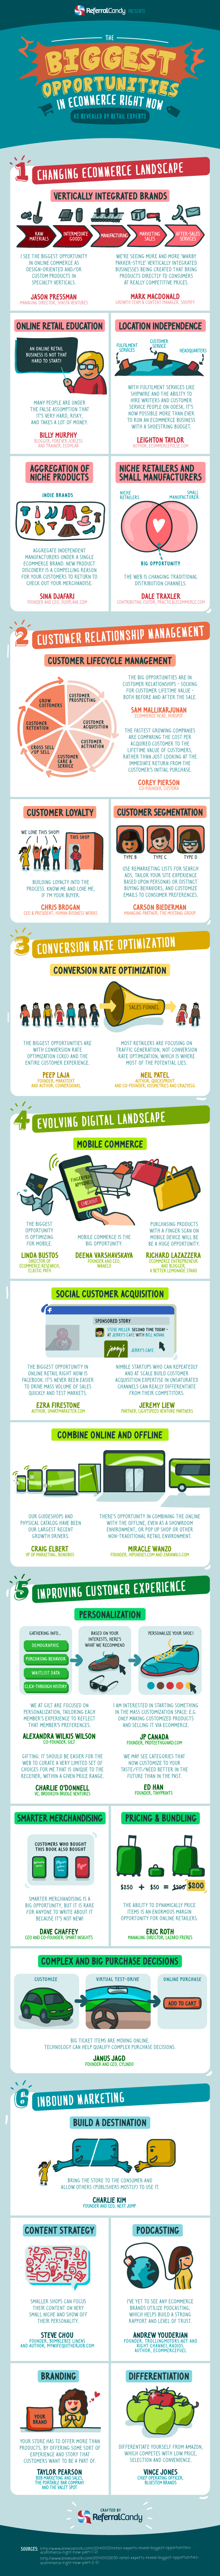 E-commerce opportunities and trends [infographic & interviews]